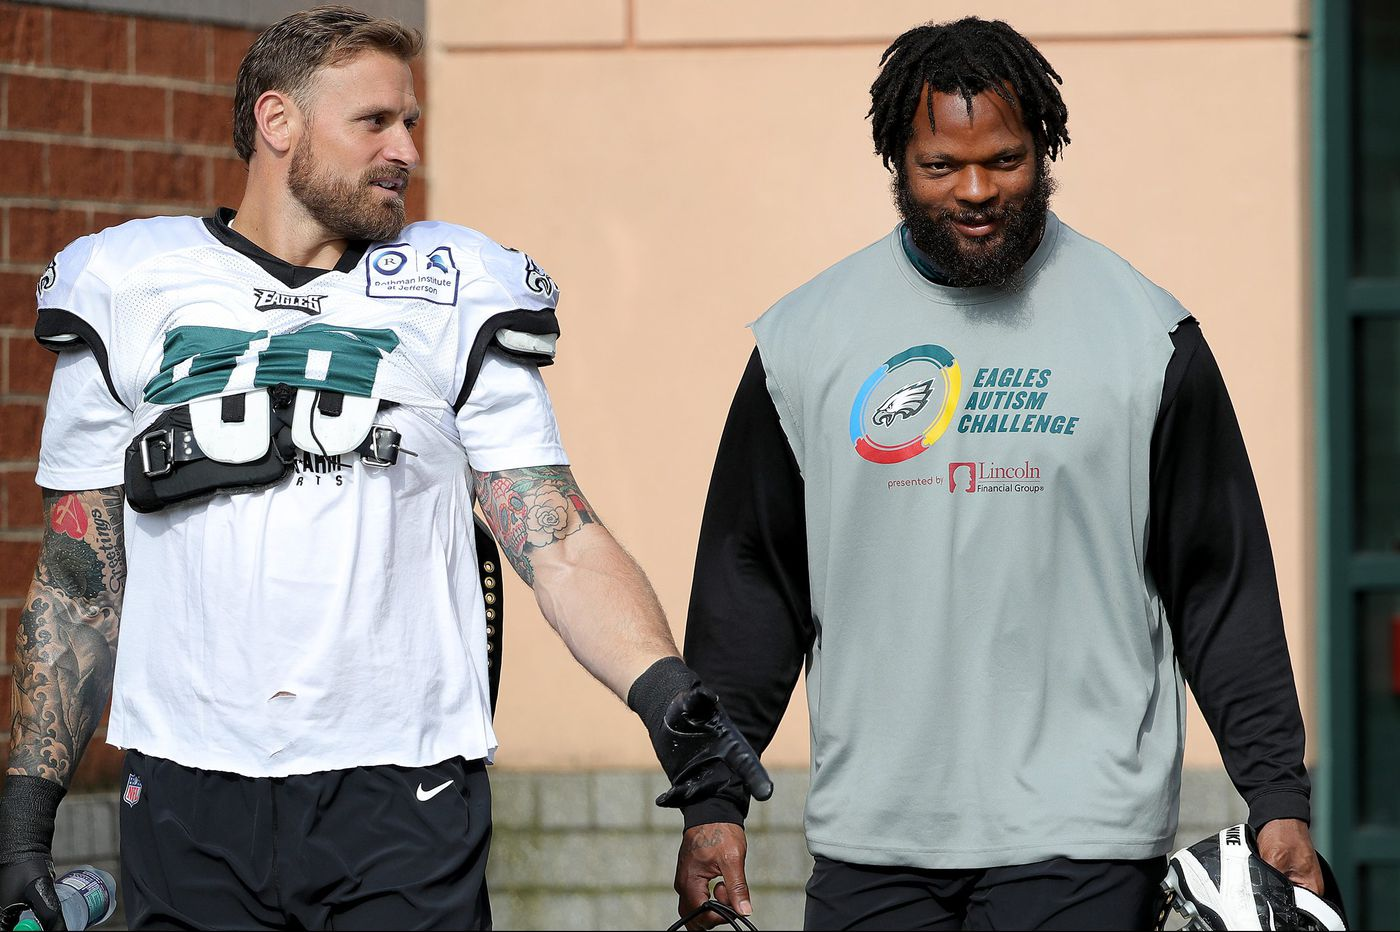 Michael Bennett and Chris Long: The Eagles' bromantic comedy duo forming in training camp